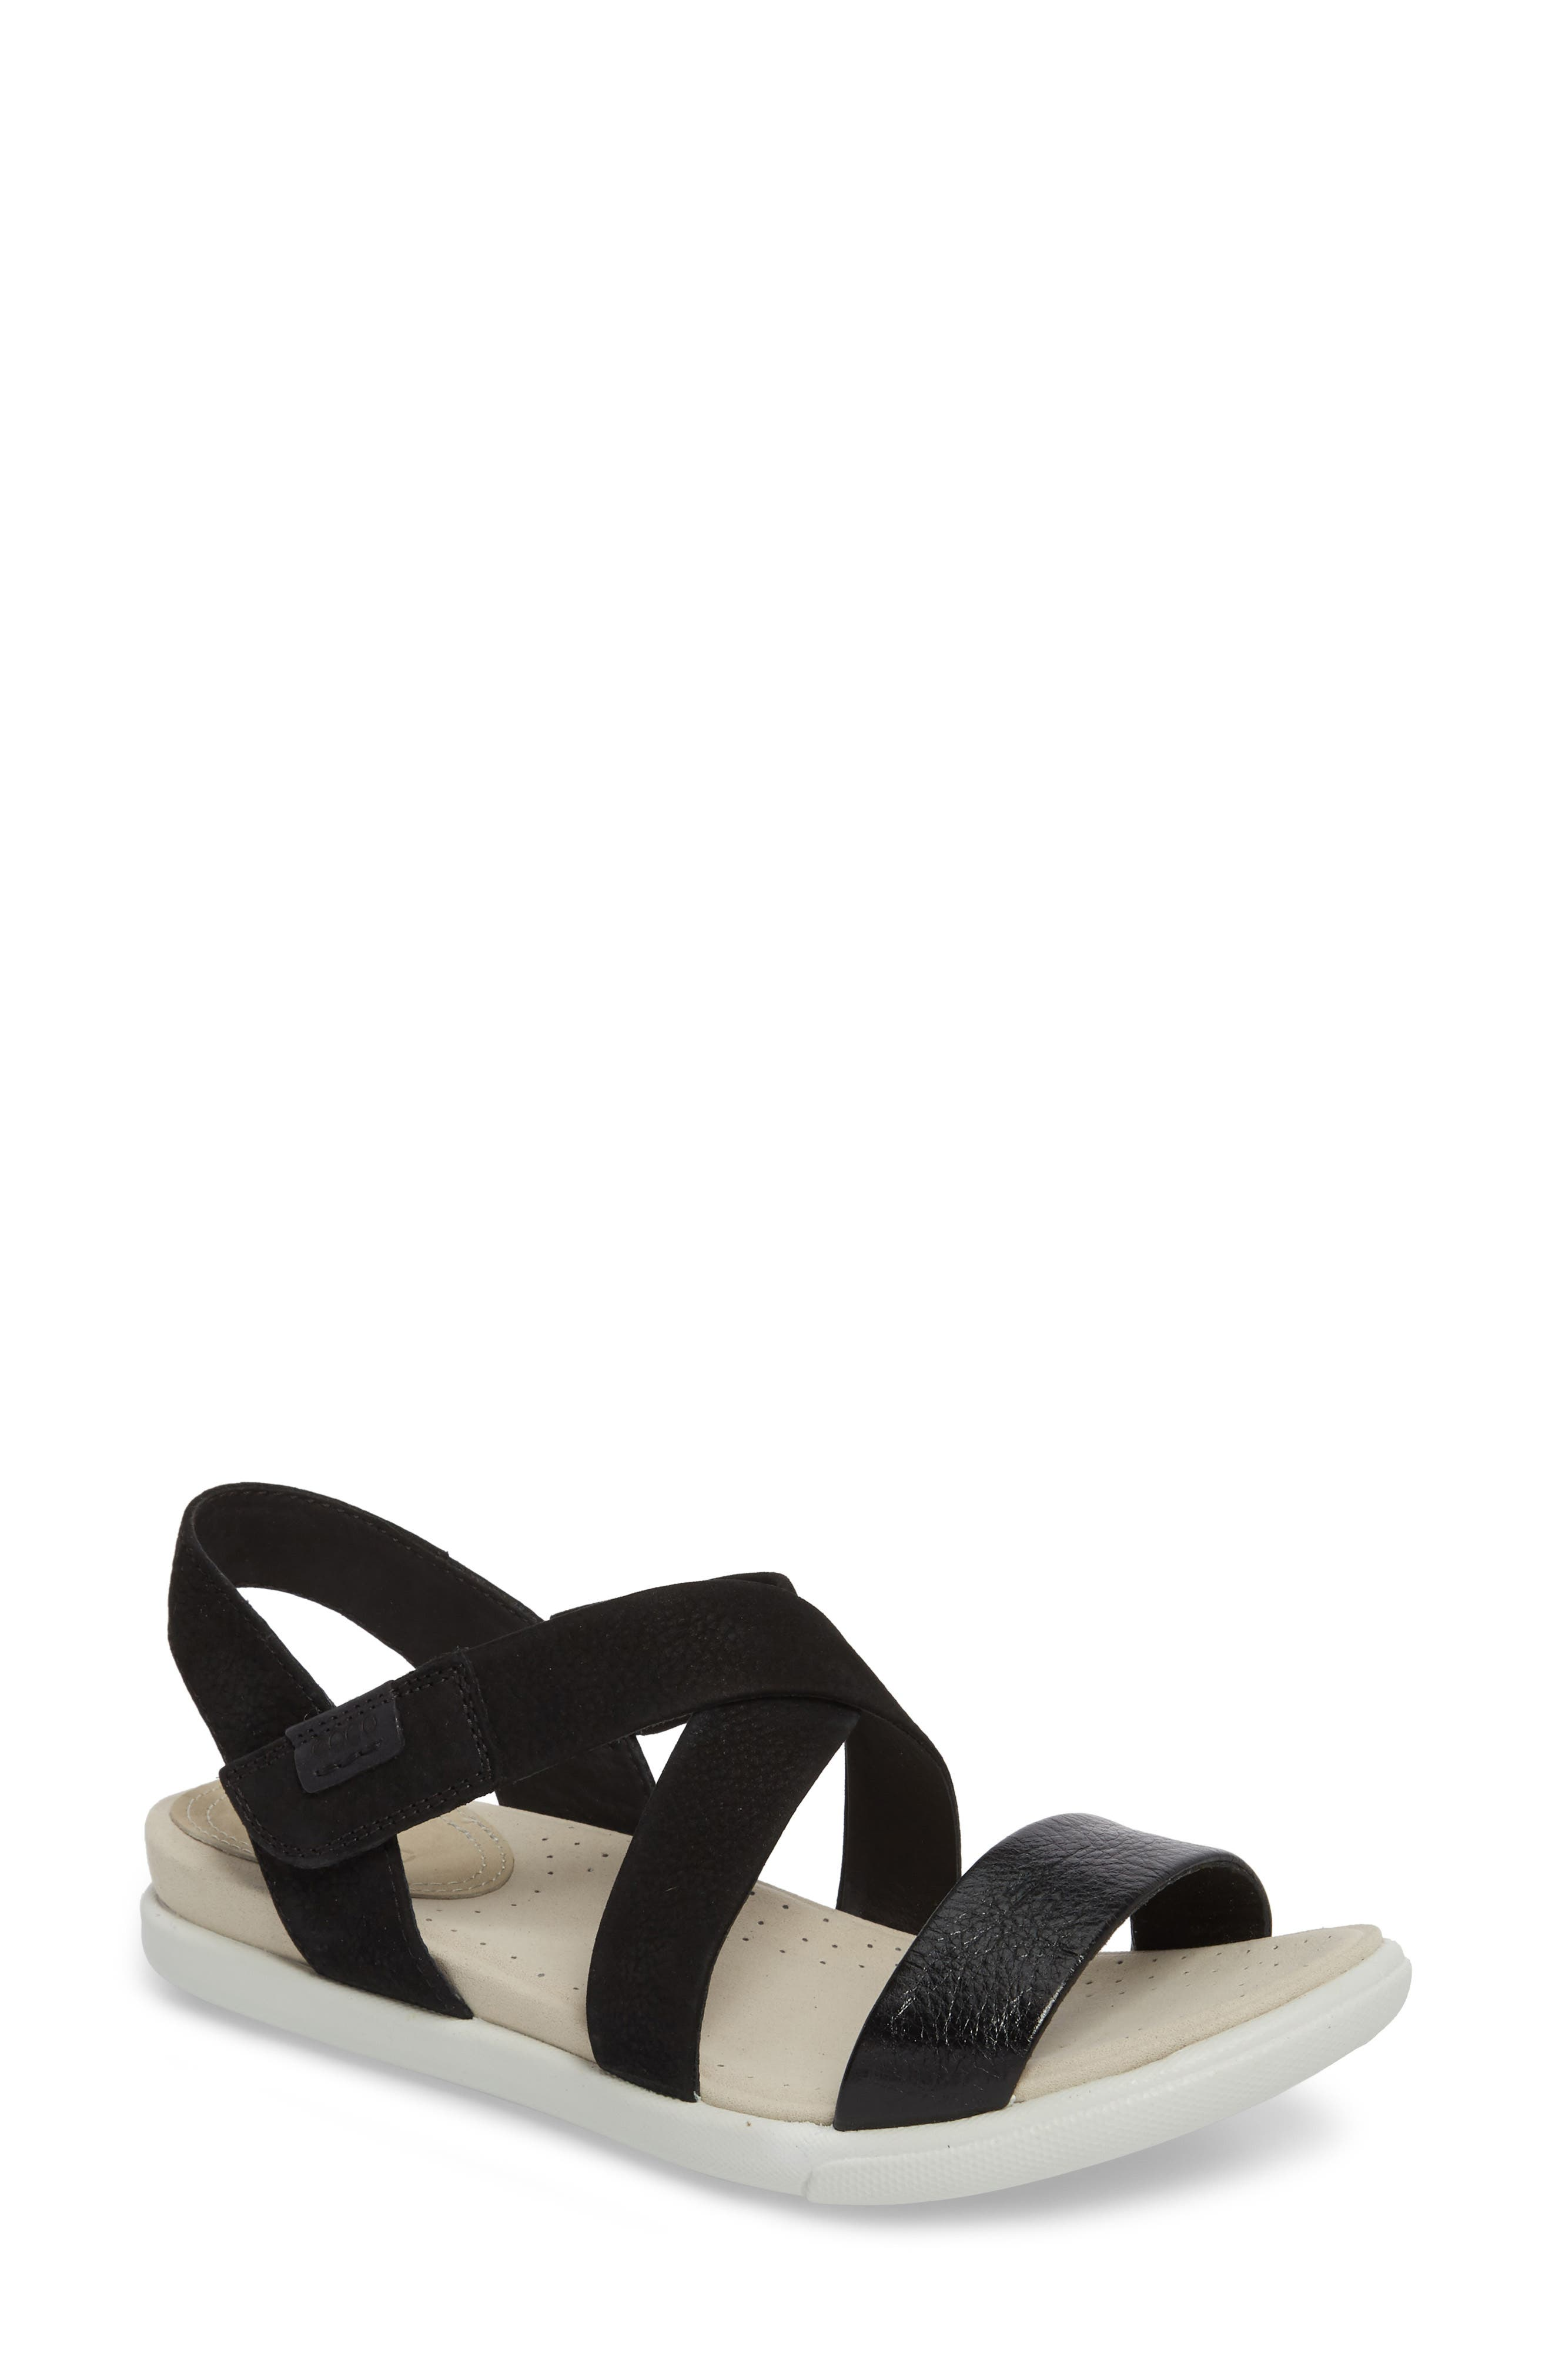 Damara Cross-Strap Sandal,                         Main,                         color,